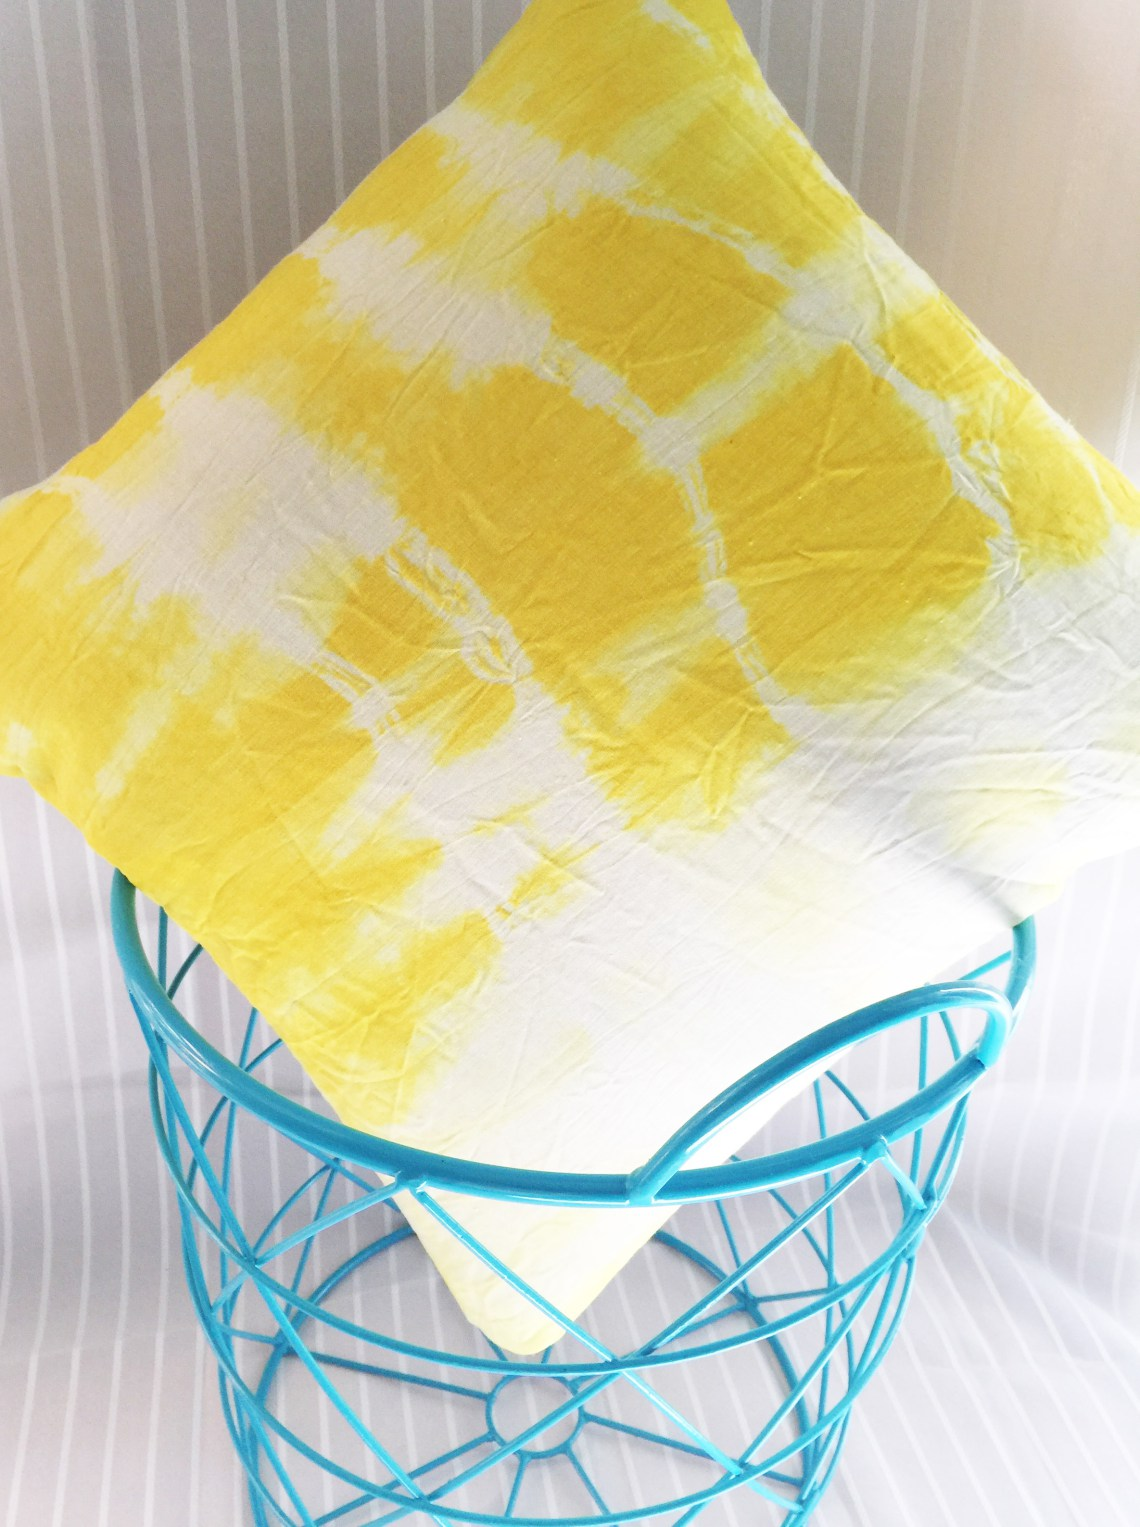 Waste Not Wednesday Week 5 - The Chelsea Project's Tie Dyed Fabric Using Natural Dye